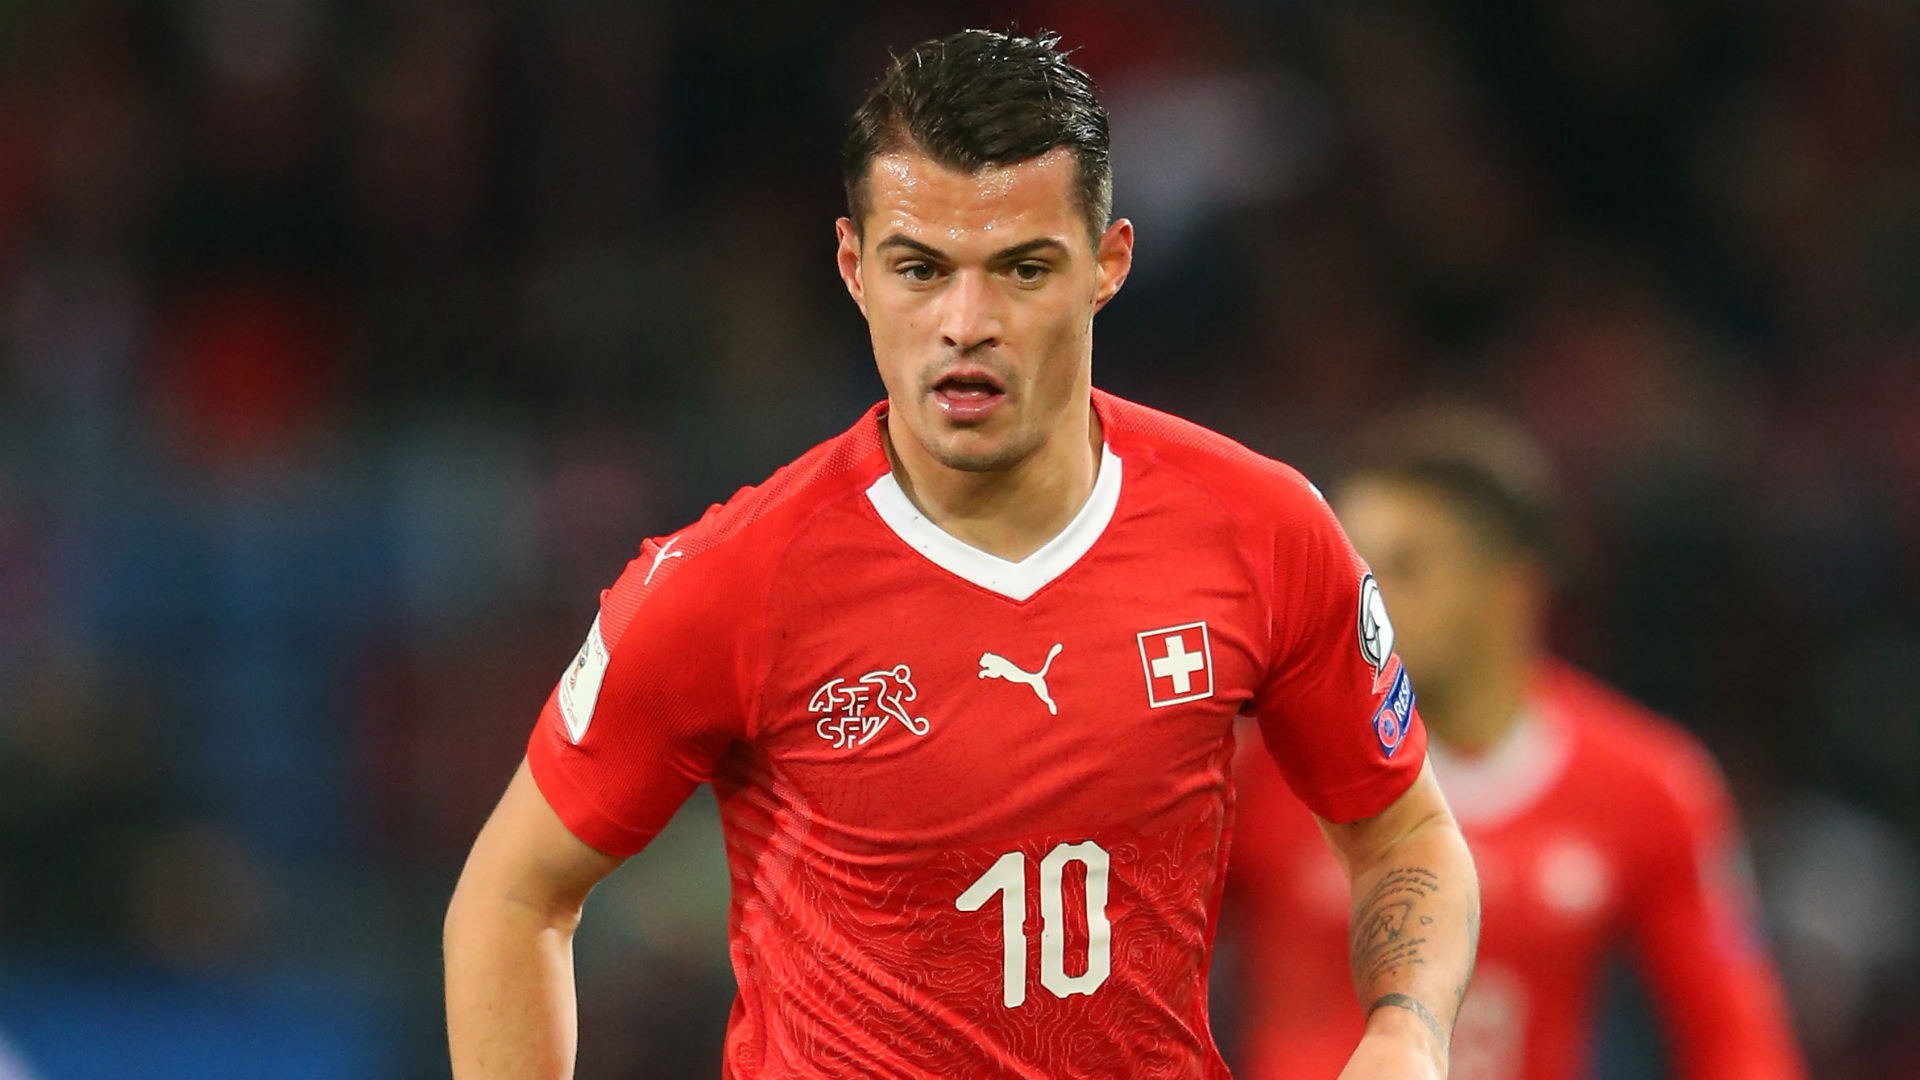 Granit Xhaka Switzerland 2017